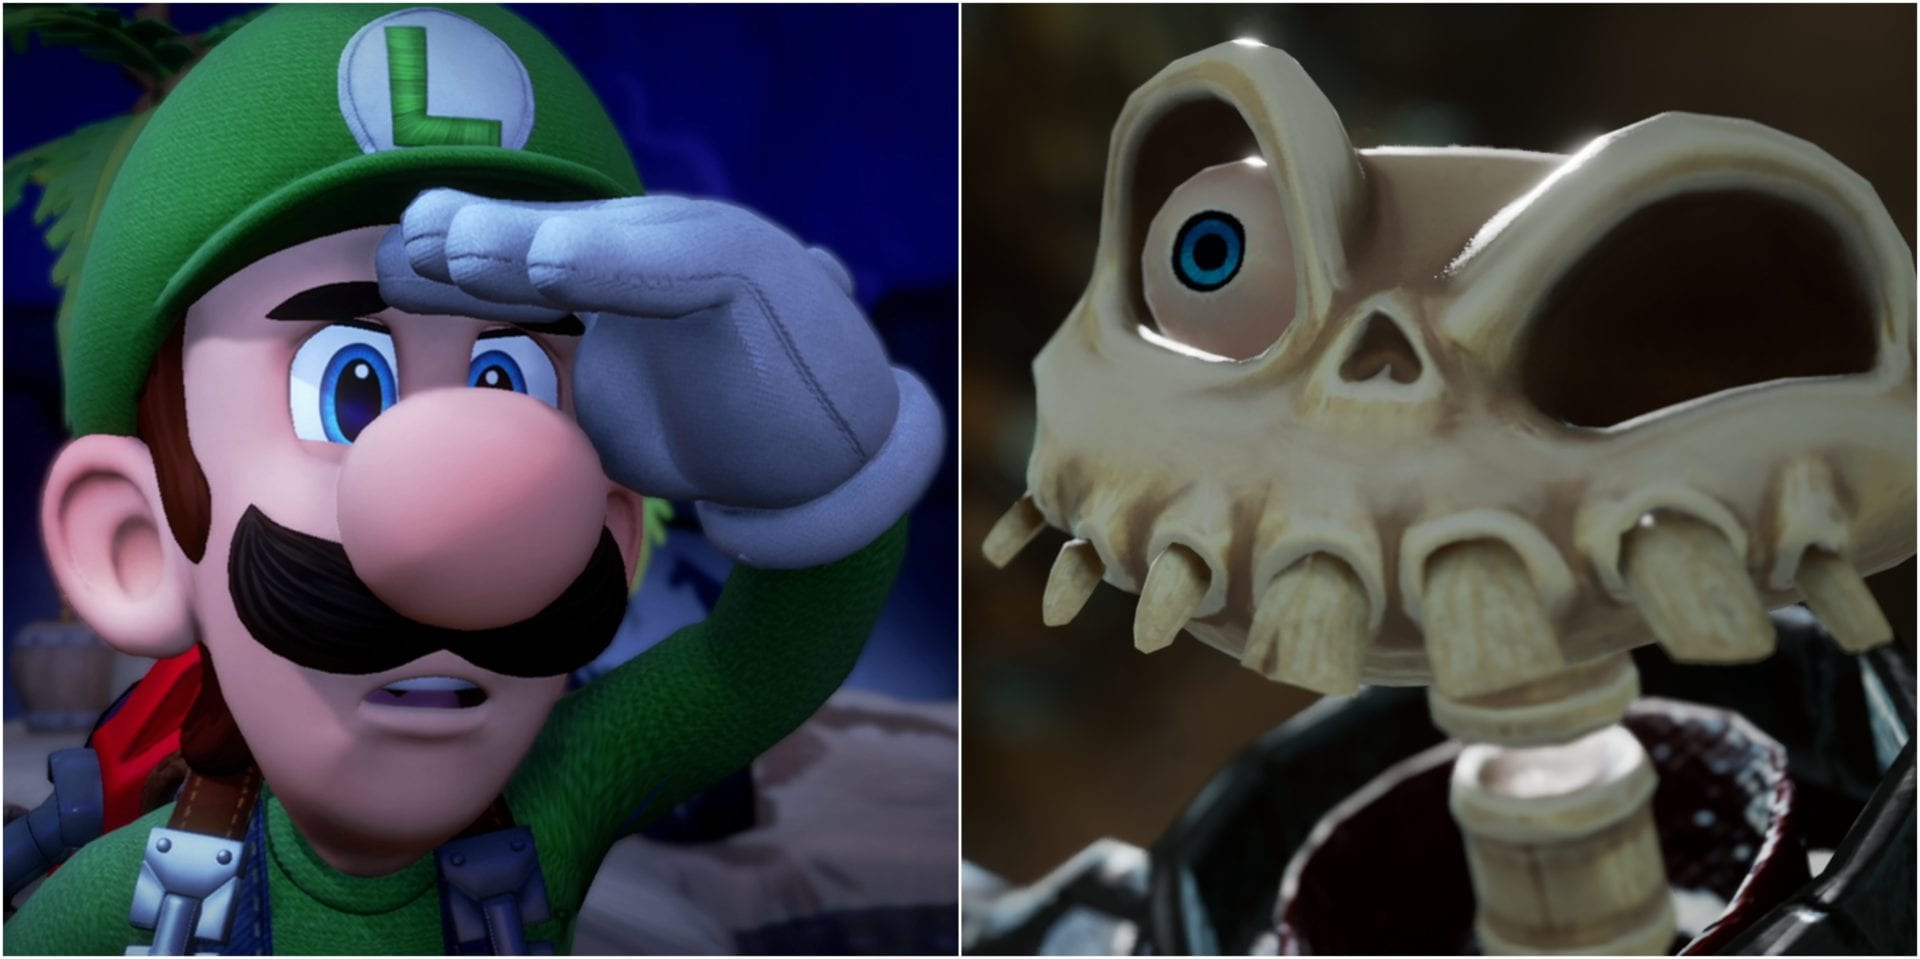 luigi's mansion vs Medievil, which game is better? which should you buy